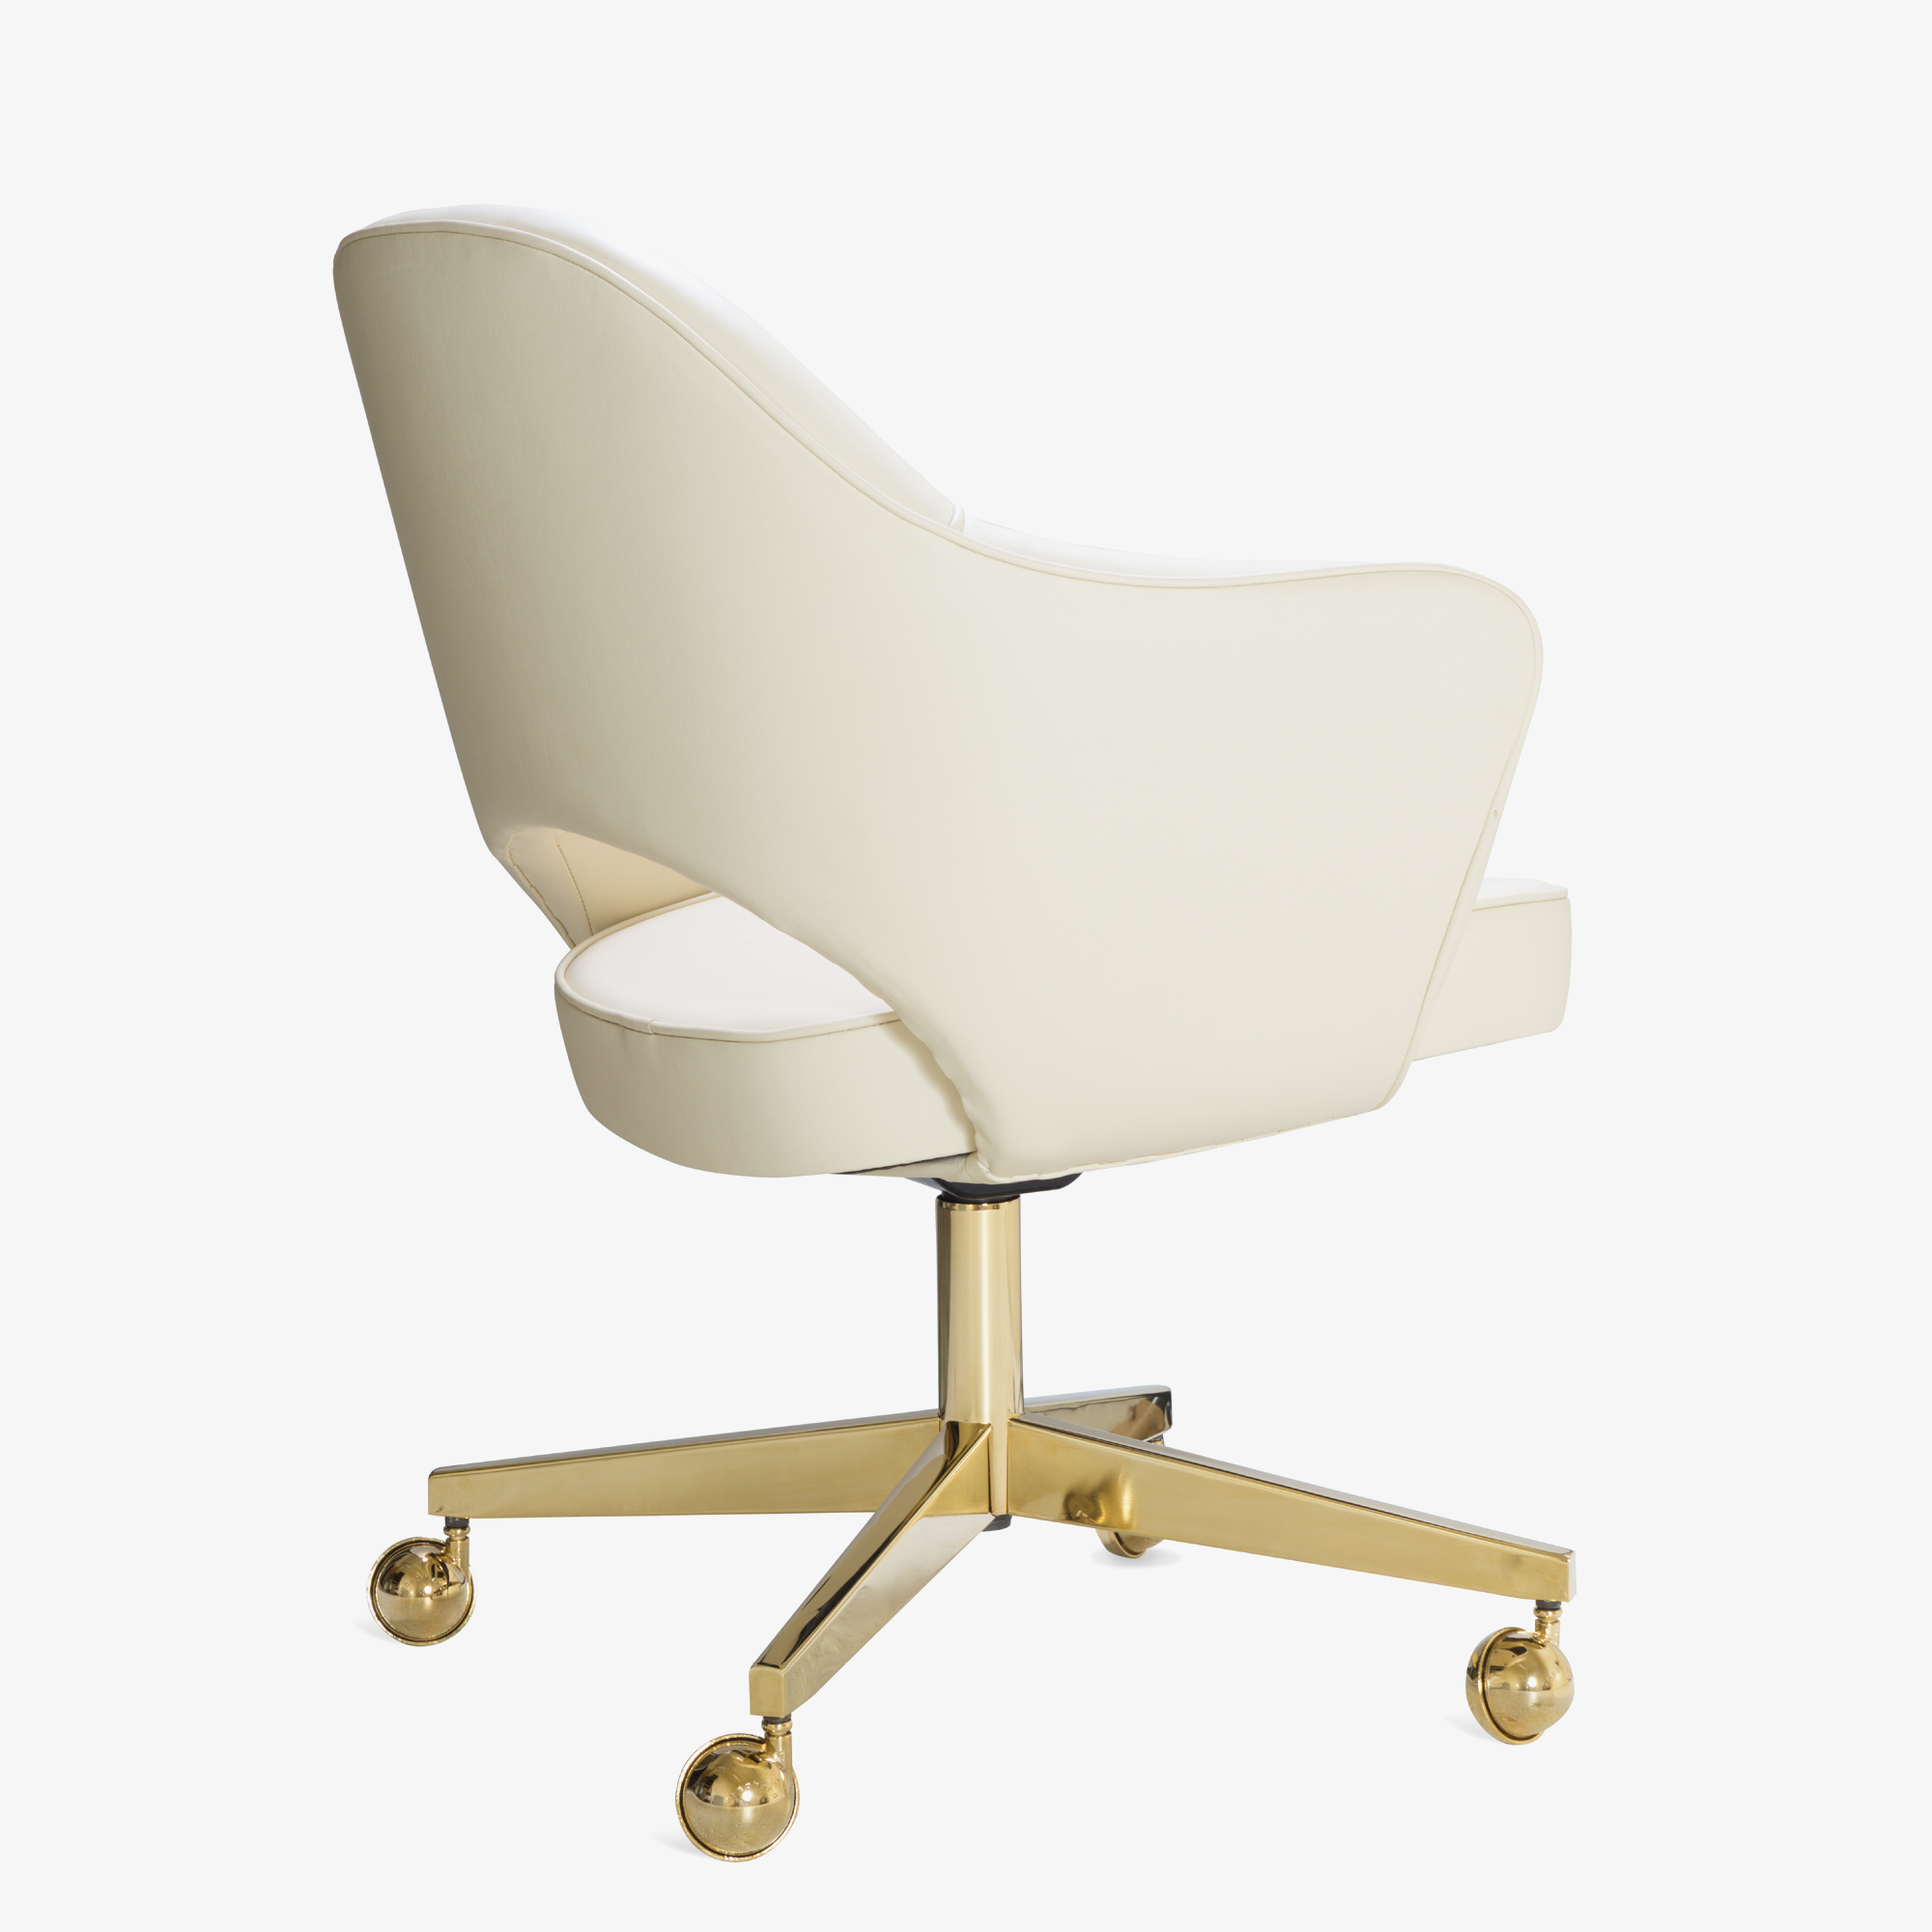 Saarinen Executive Arm Chair in Creme Leather, Swivel Base, 24k Gold Edition4.png